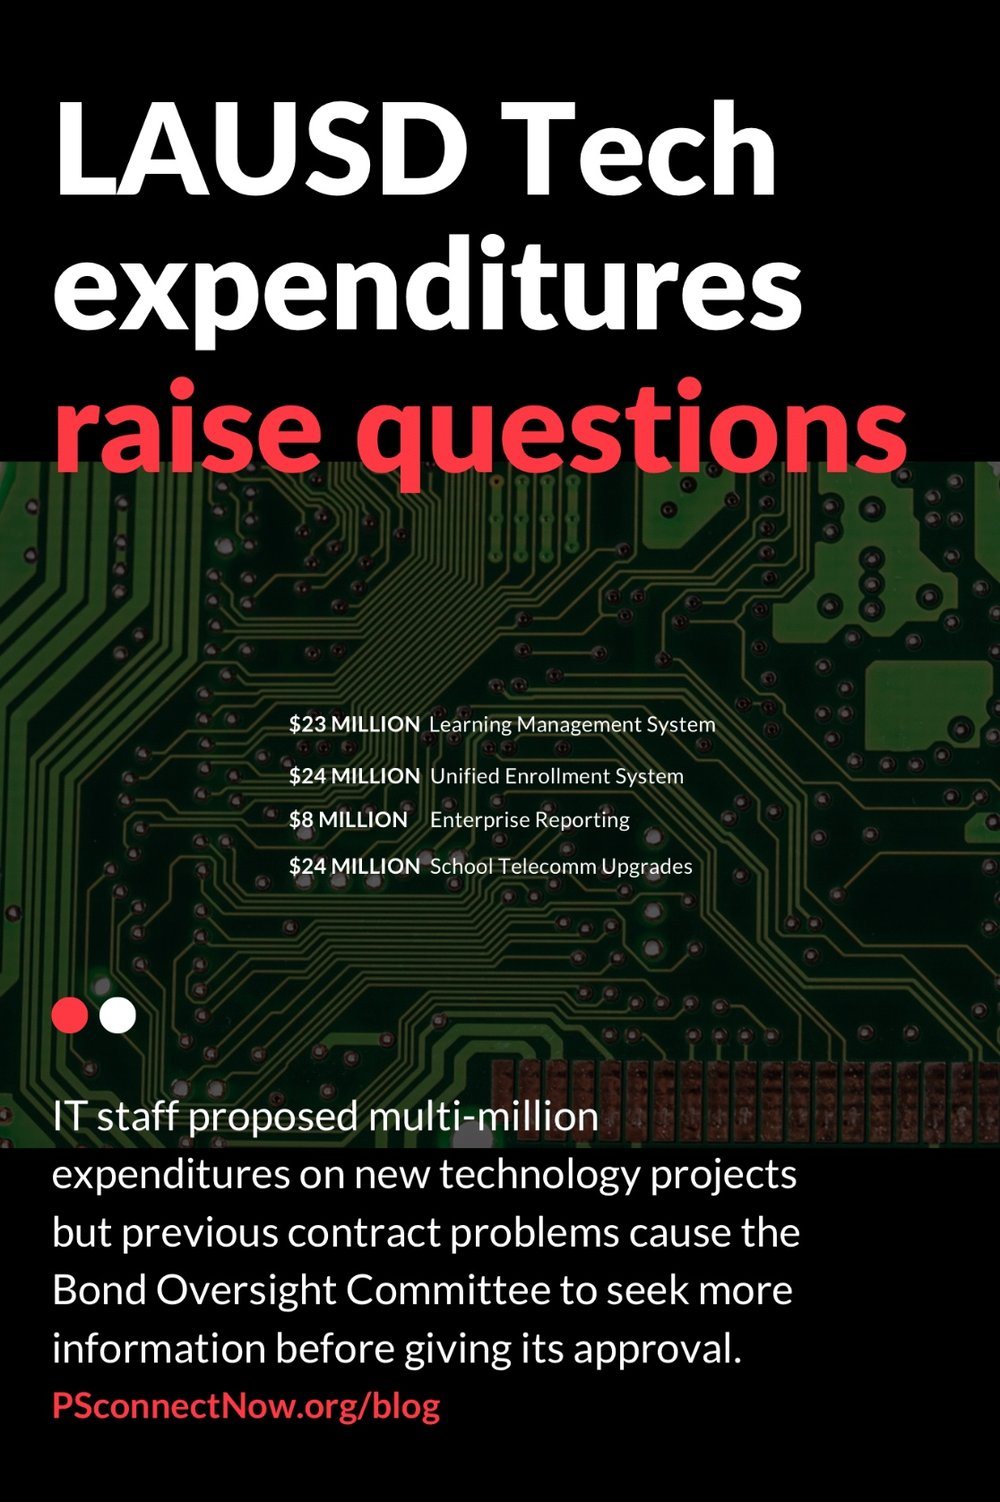 LAUSD Tech expenditures raise questions